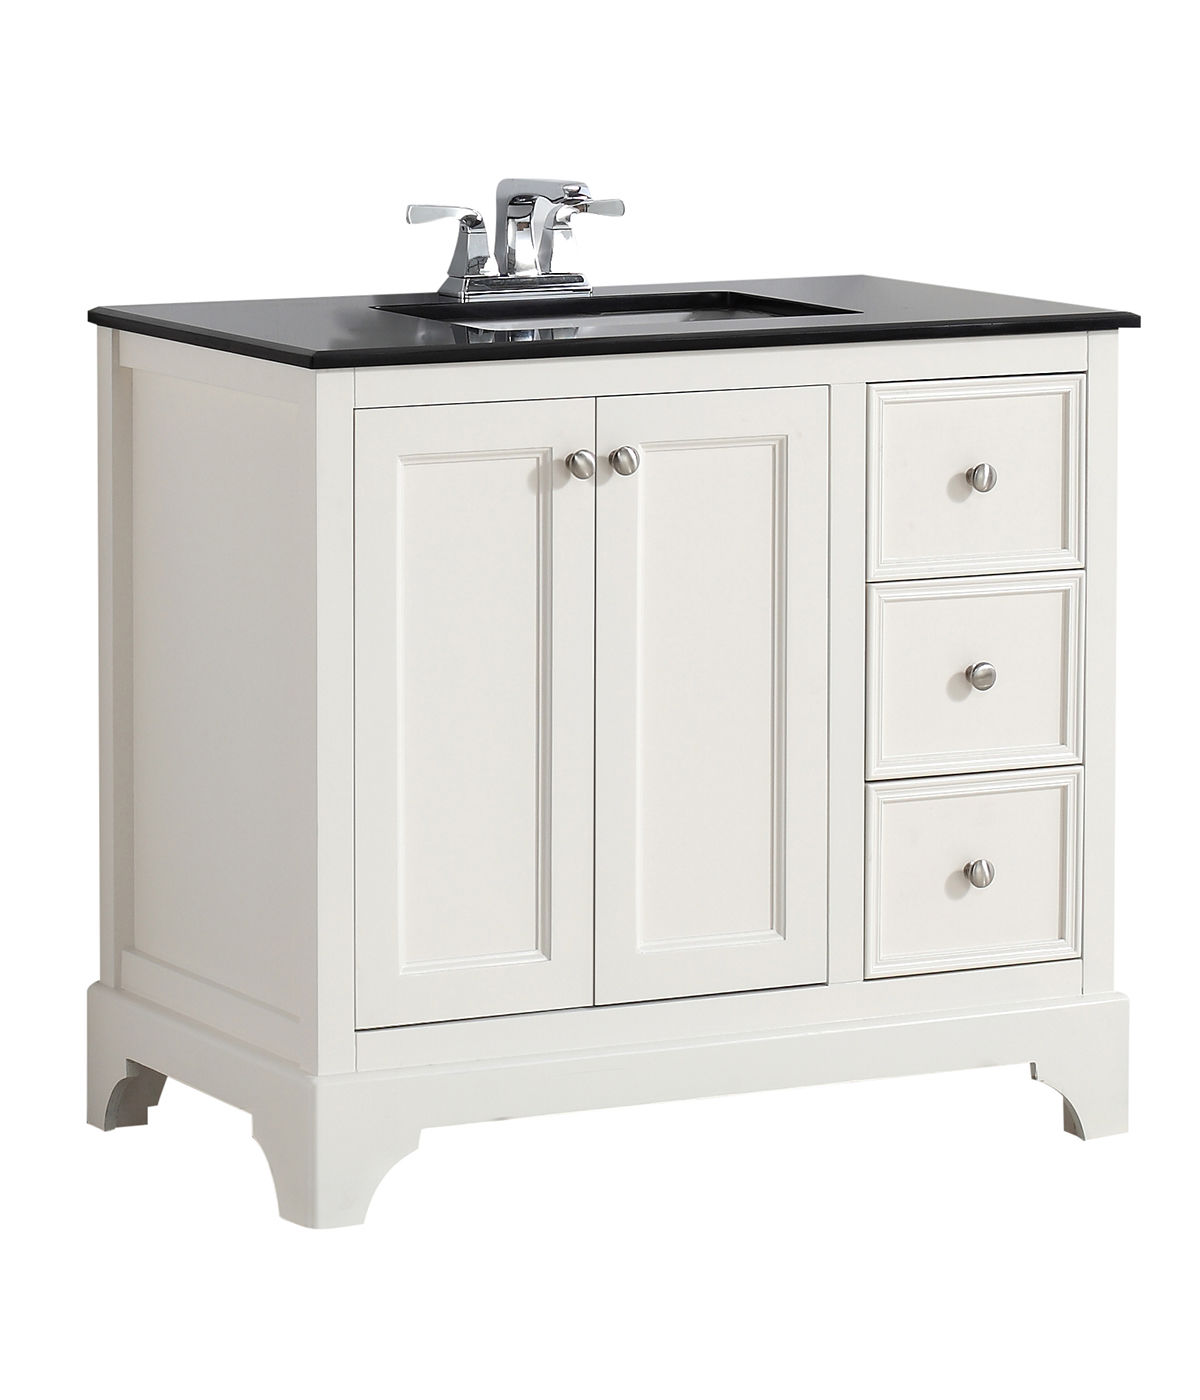 fancy legion furniture bathroom vanity online-Terrific Legion Furniture Bathroom Vanity Wallpaper